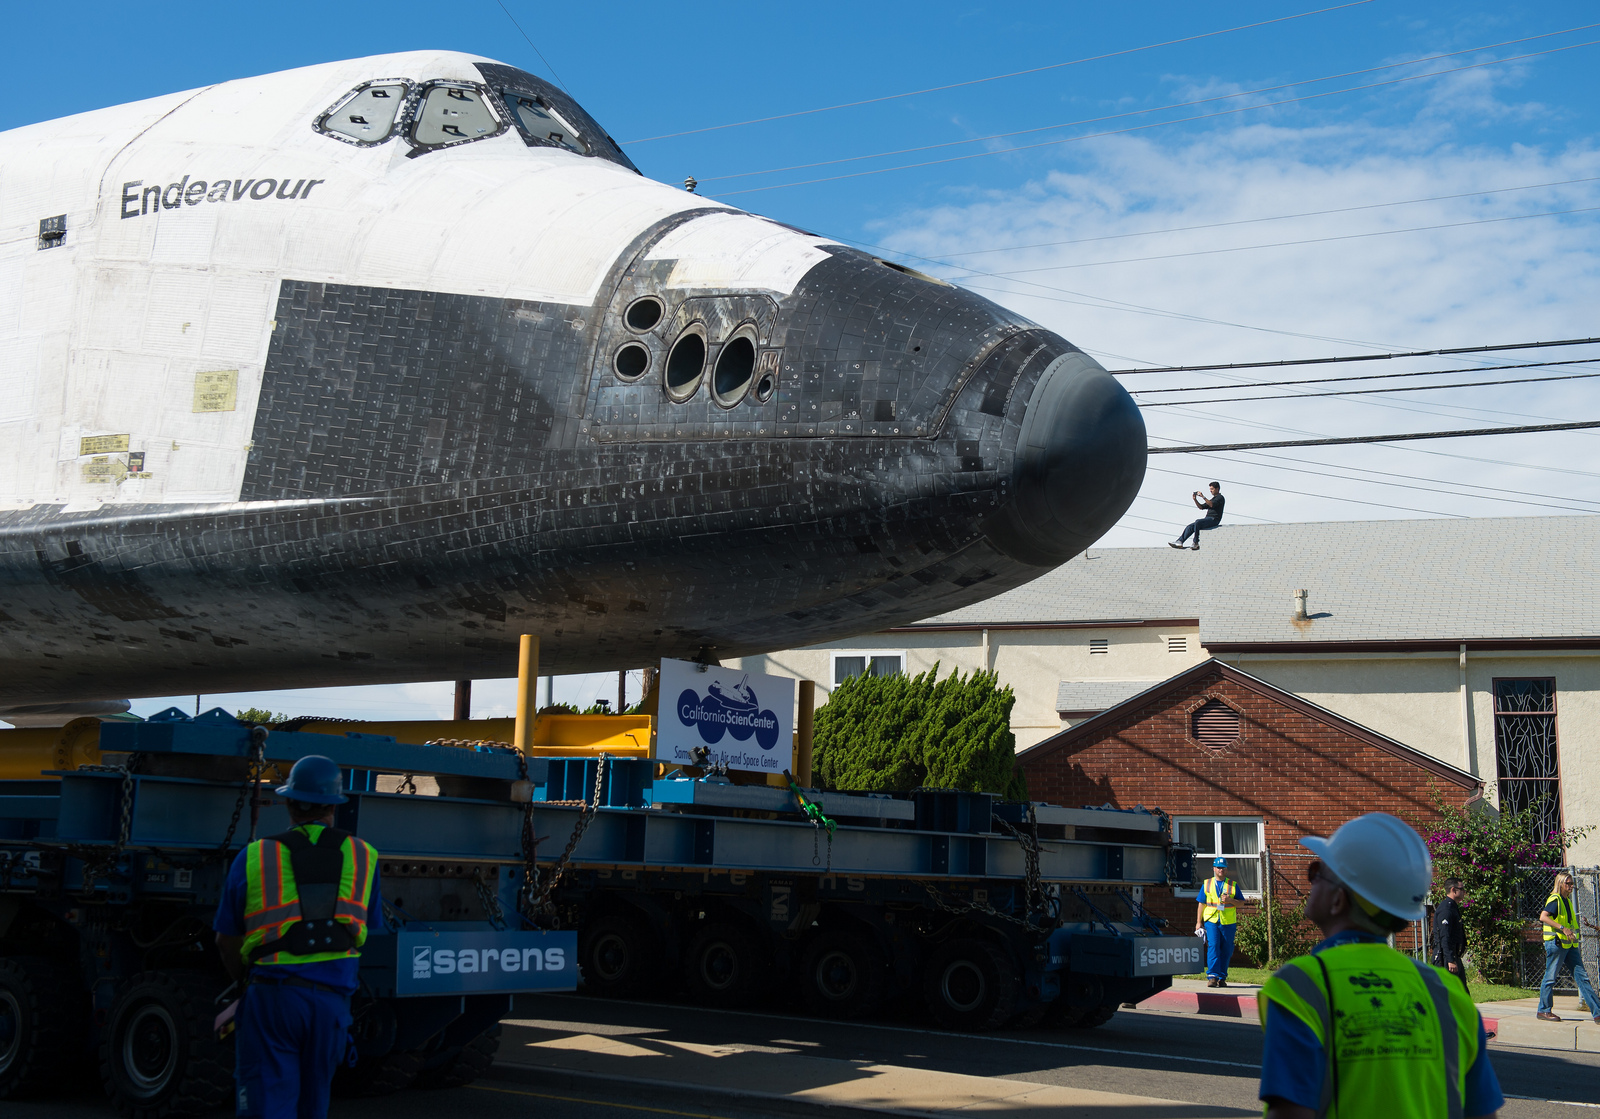 Shuttle Endeavour on L.A. Streets: Rooftop View